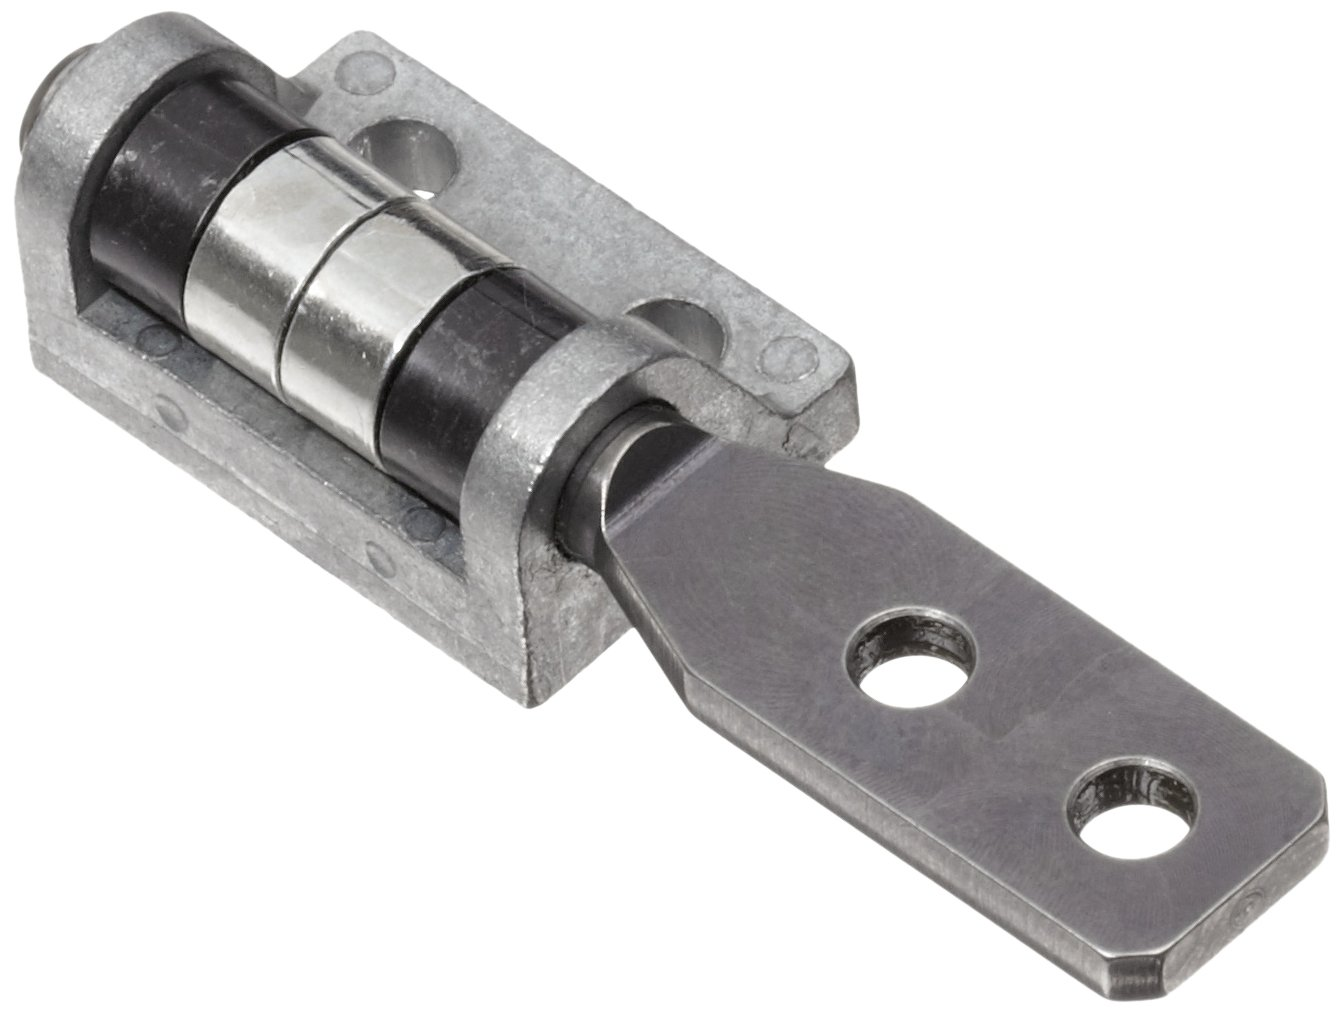 TorqMaster Friction Hinge with Holes, 1-23/32'' Leaf Height, 5 lbs/in Torque, Left Hand (Pack of 1)